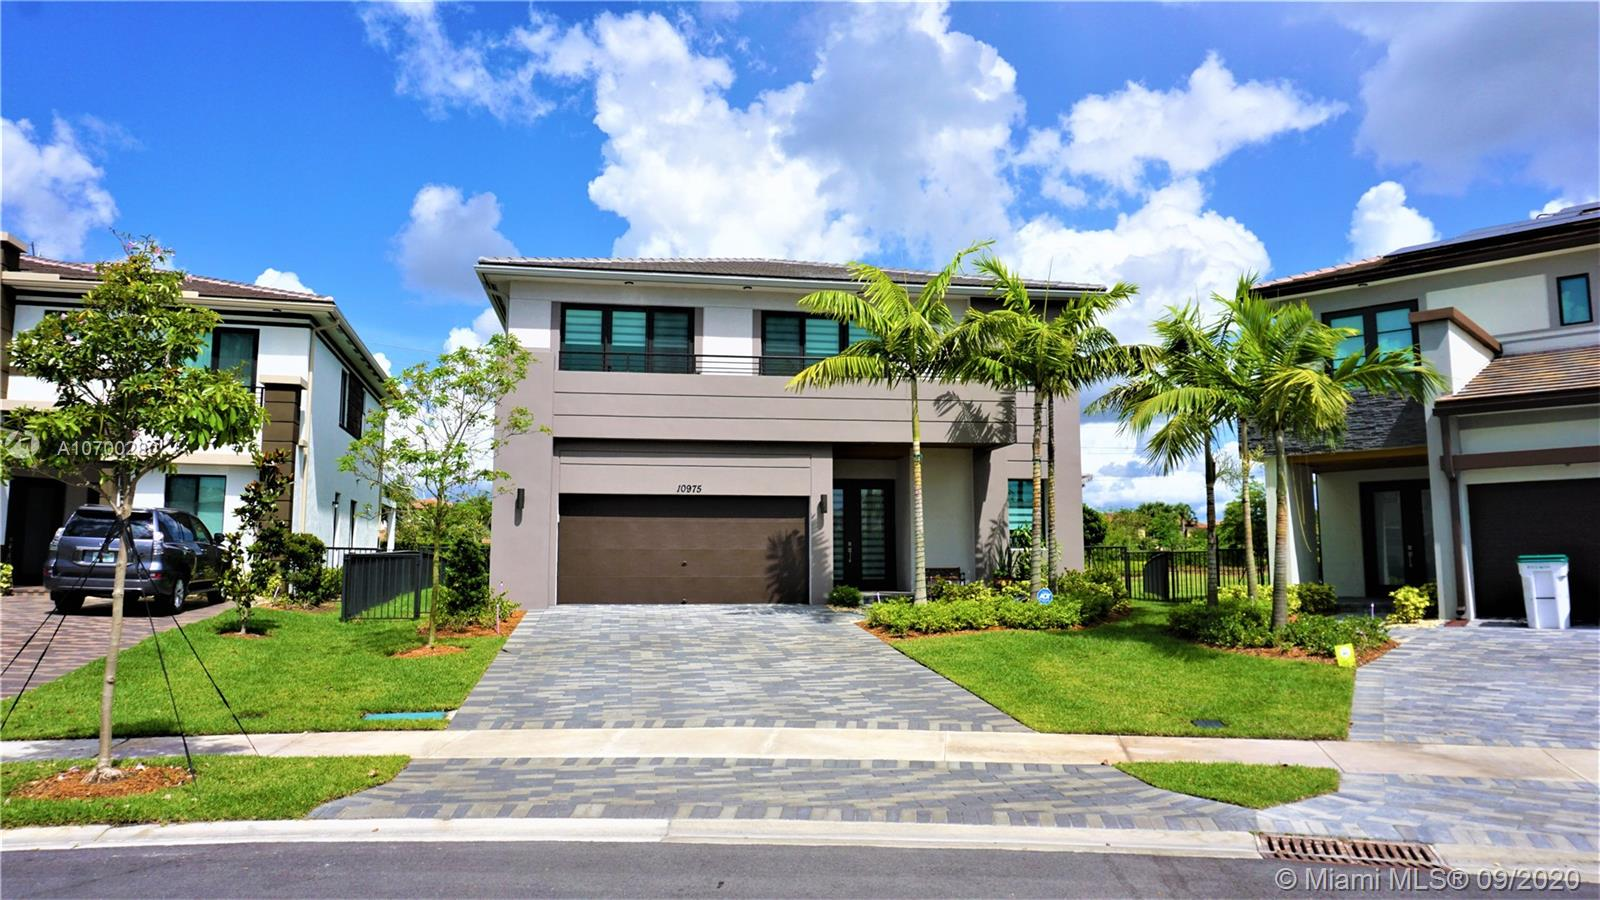 If you're looking for the best of community living with a broad range of amenities for every family member, your search end here. Cascata@Miralago. This new modern & smart house has 5 beds /4 full baths. First Floor, marble floor, open space concept, kitchen w/white quartz counters and SS appliances, a cabana bathroom, one bedroom, formal dining room, Family room, Living room and bar area. Second floor, wood floor, a master suit with reading area, two walking closets, big master bathroom, tub/spa, shower, loft space for entertainment, a bedroom with a private bath, the other bedrooms share a bath, 2 bedrooms with access to the balcony. A huge patio with lake view, access to cabana bath, perfect for your BBQ party. More than 150K in upgrades from the original model.